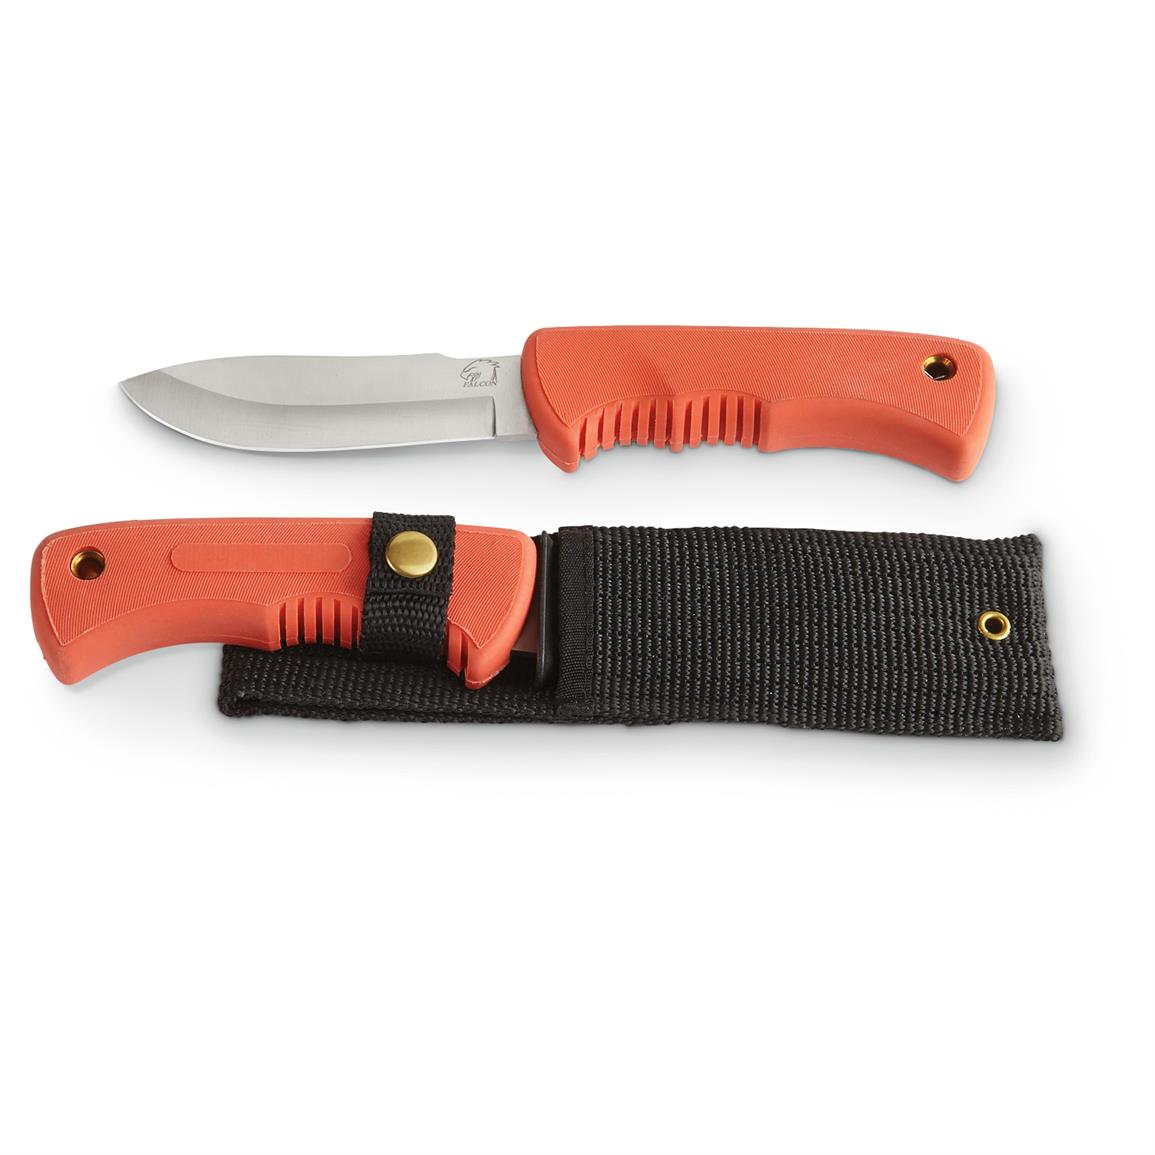 2-Pk. of Orange Drop-point Hunting Knives